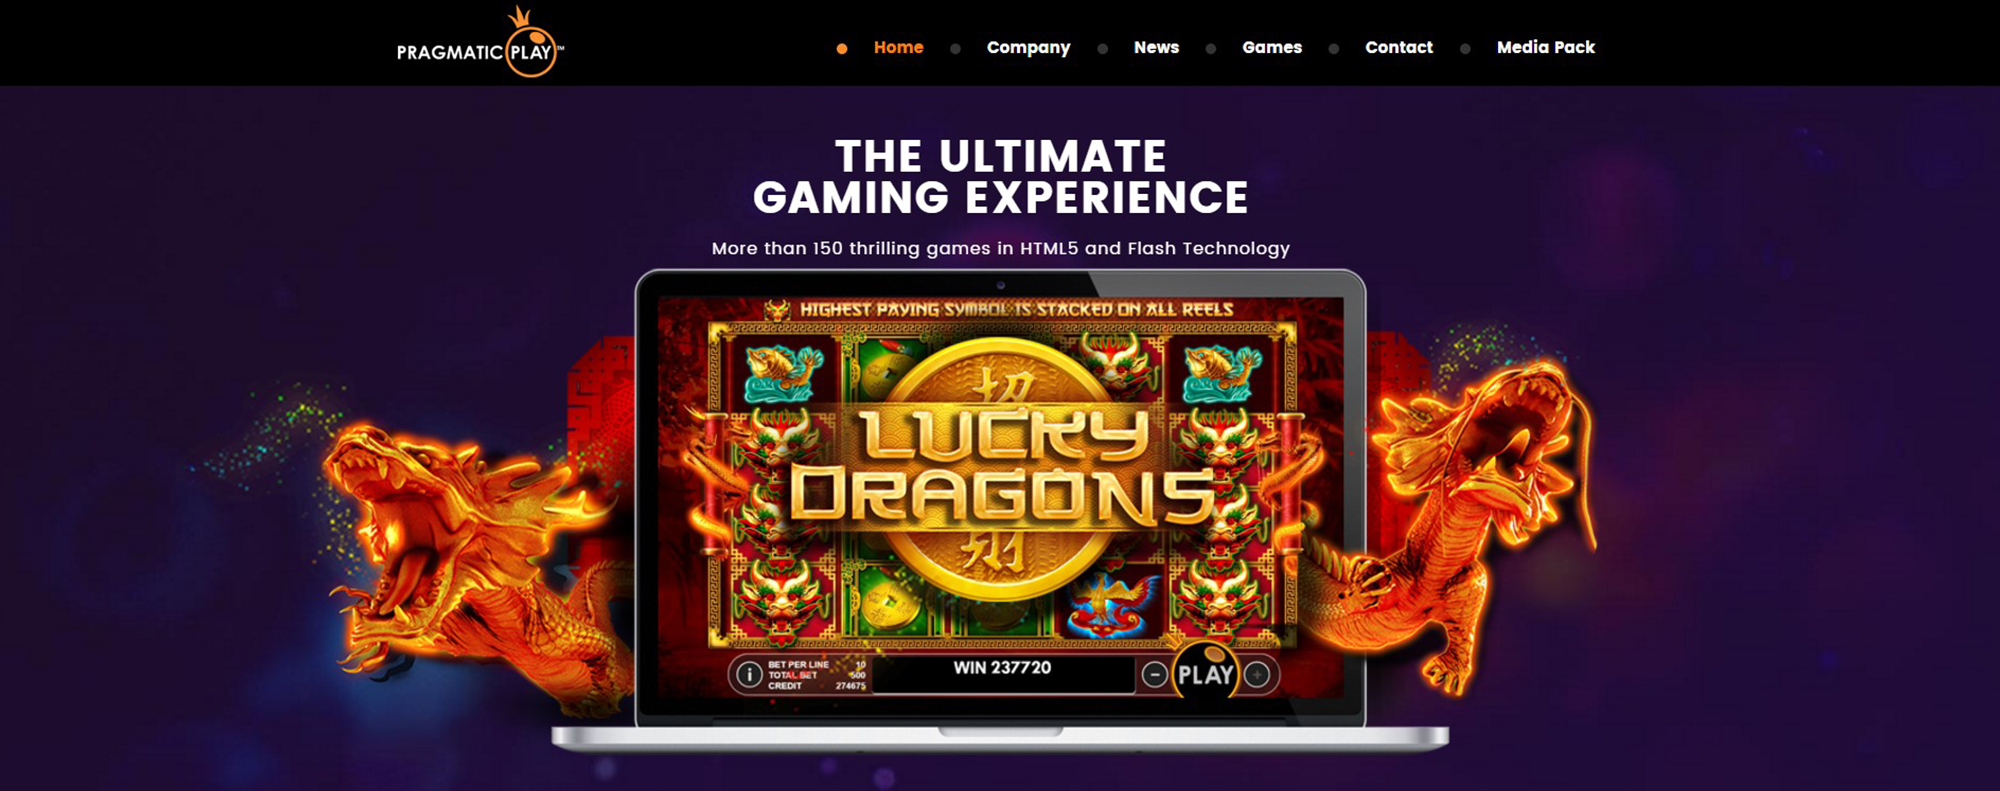 Pragmatic Play Casinos – Online Casinos by Pragmatic Play